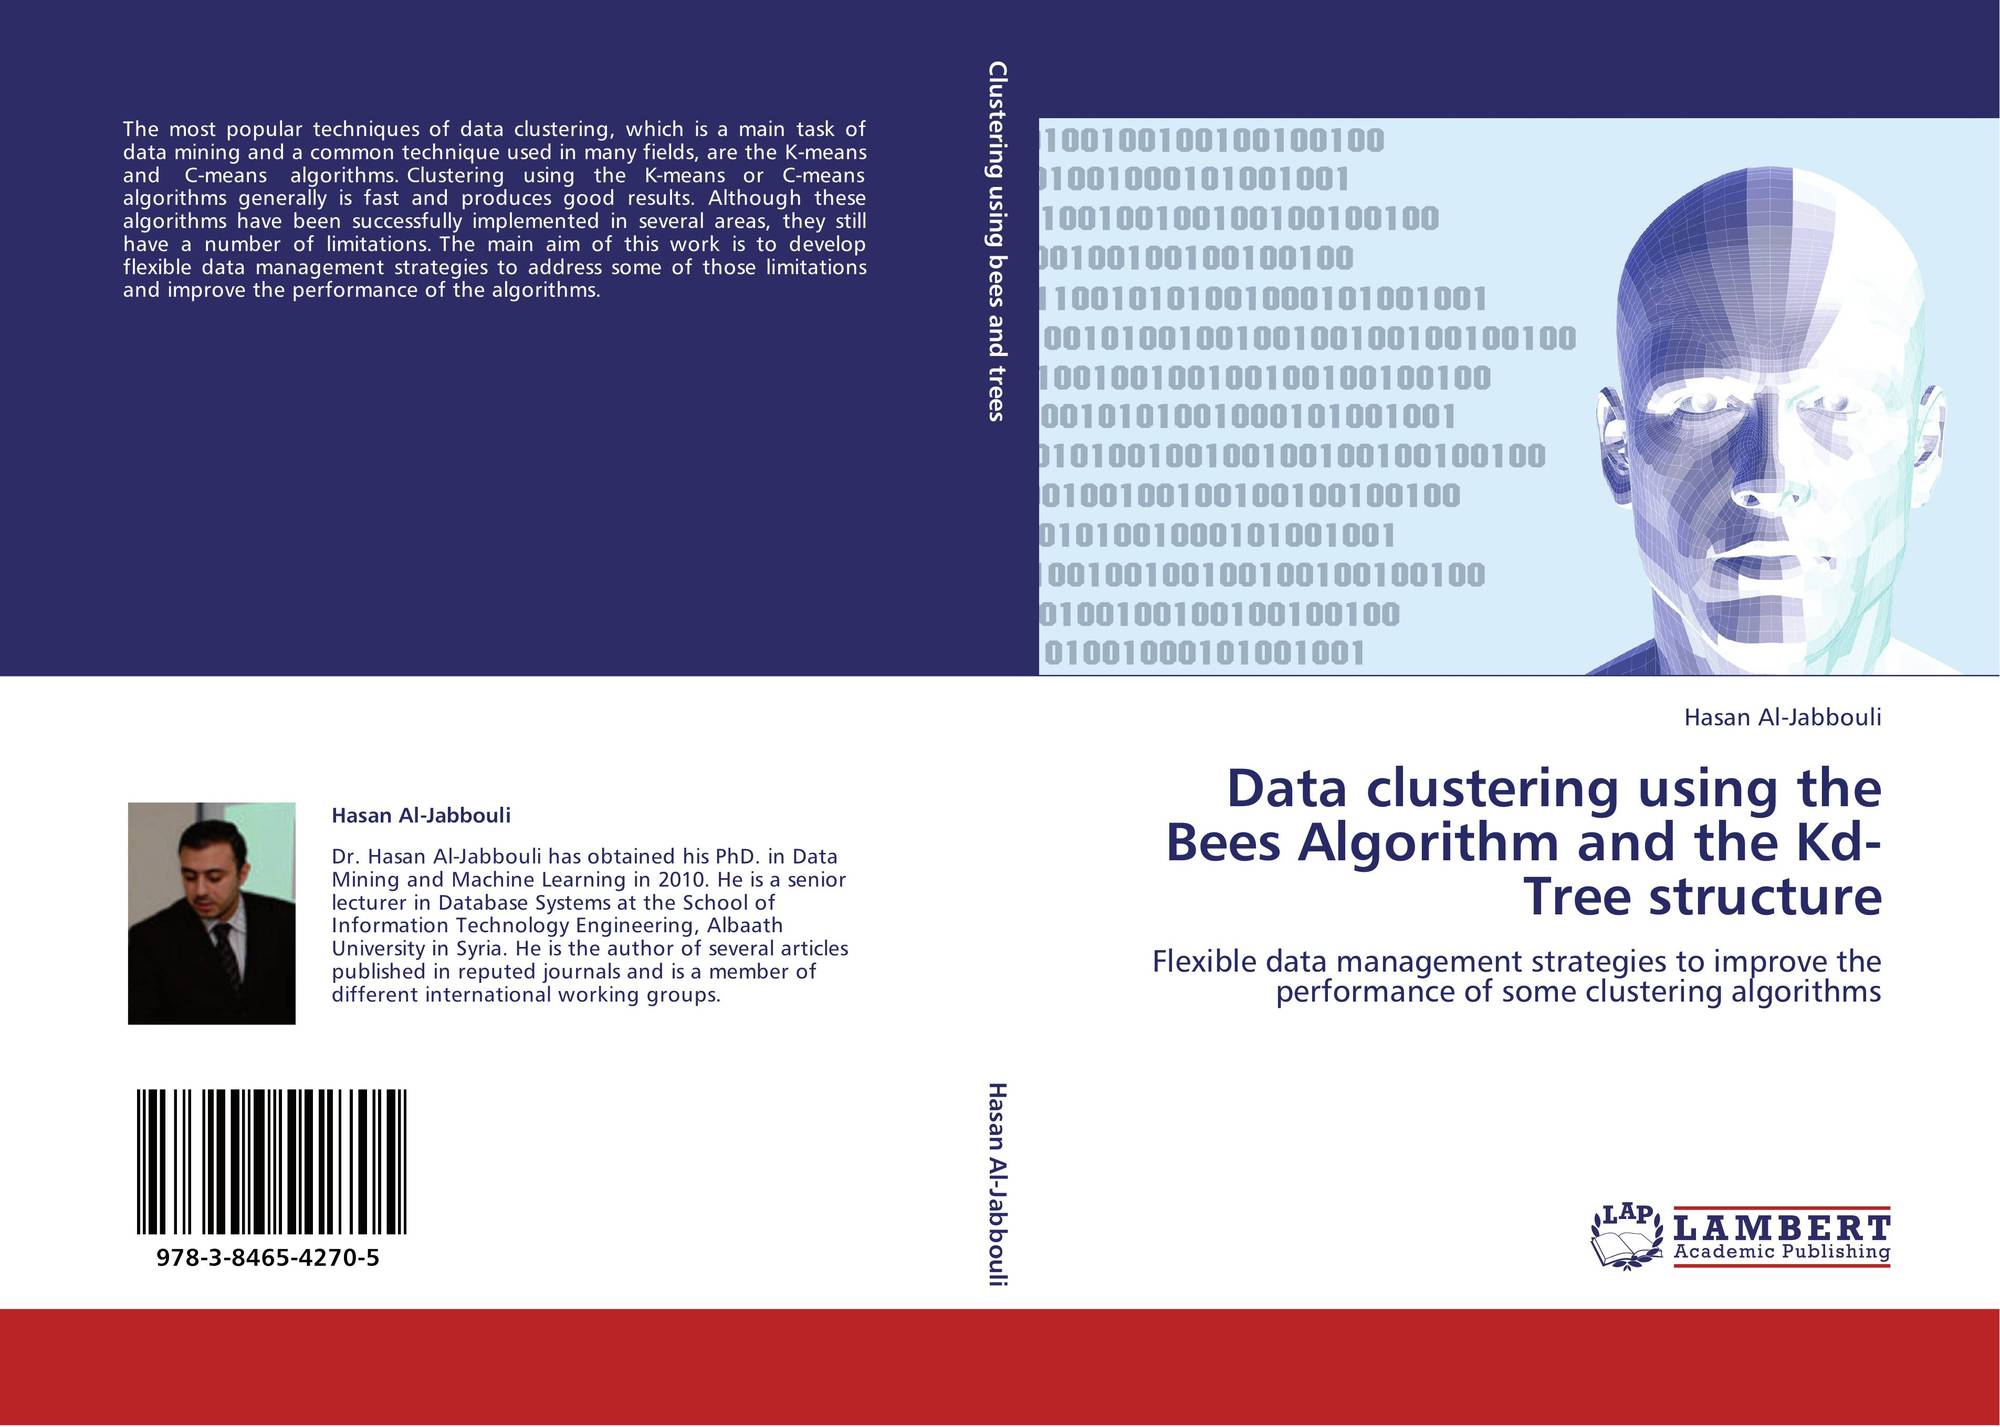 Data clustering using the Bees Algorithm and the Kd-Tree structure